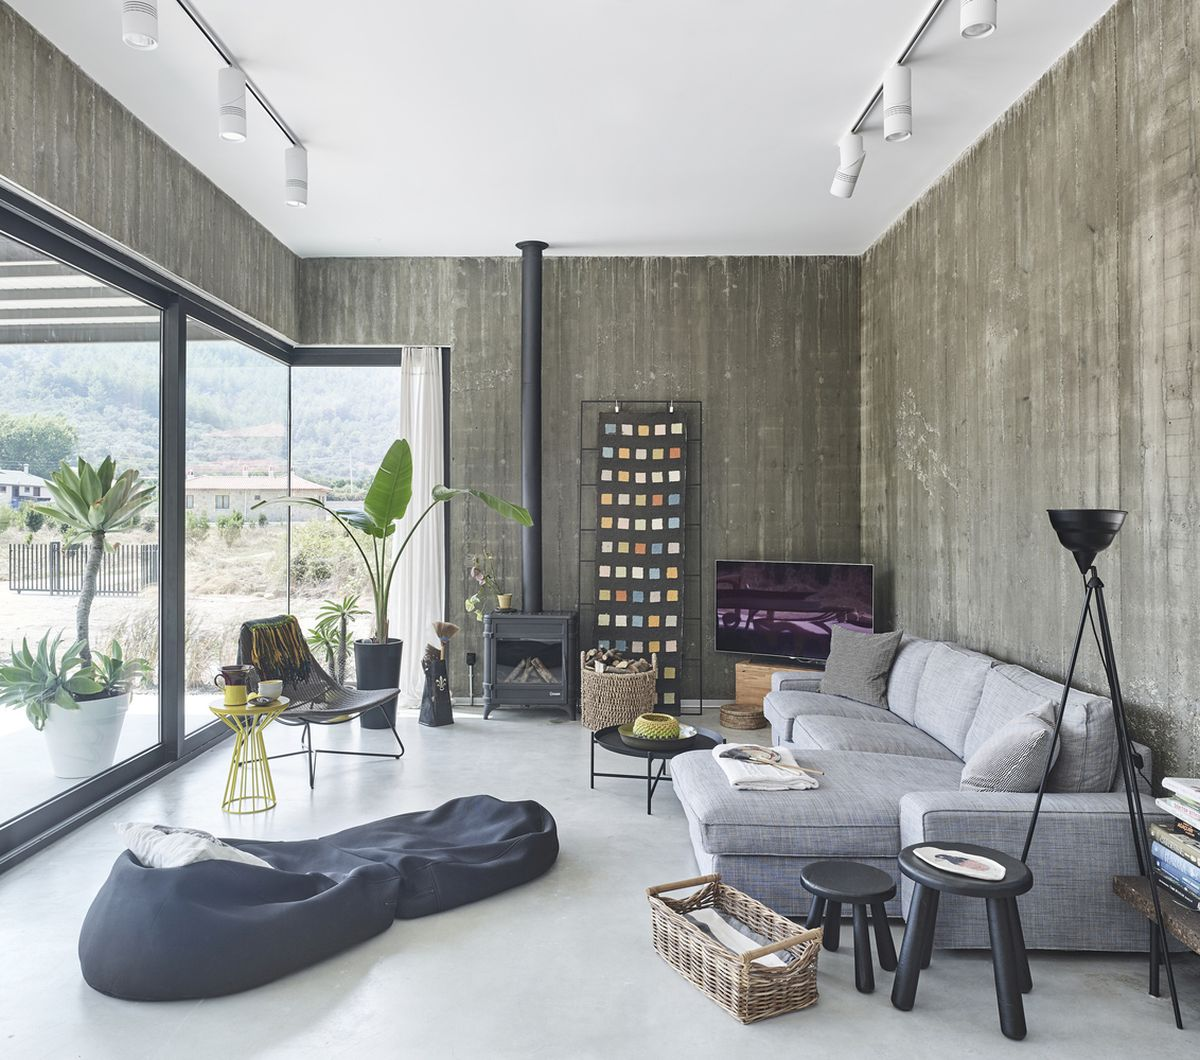 In the living room there's a comfy sectional sofa complemented by various accent tables, poufs and chairs